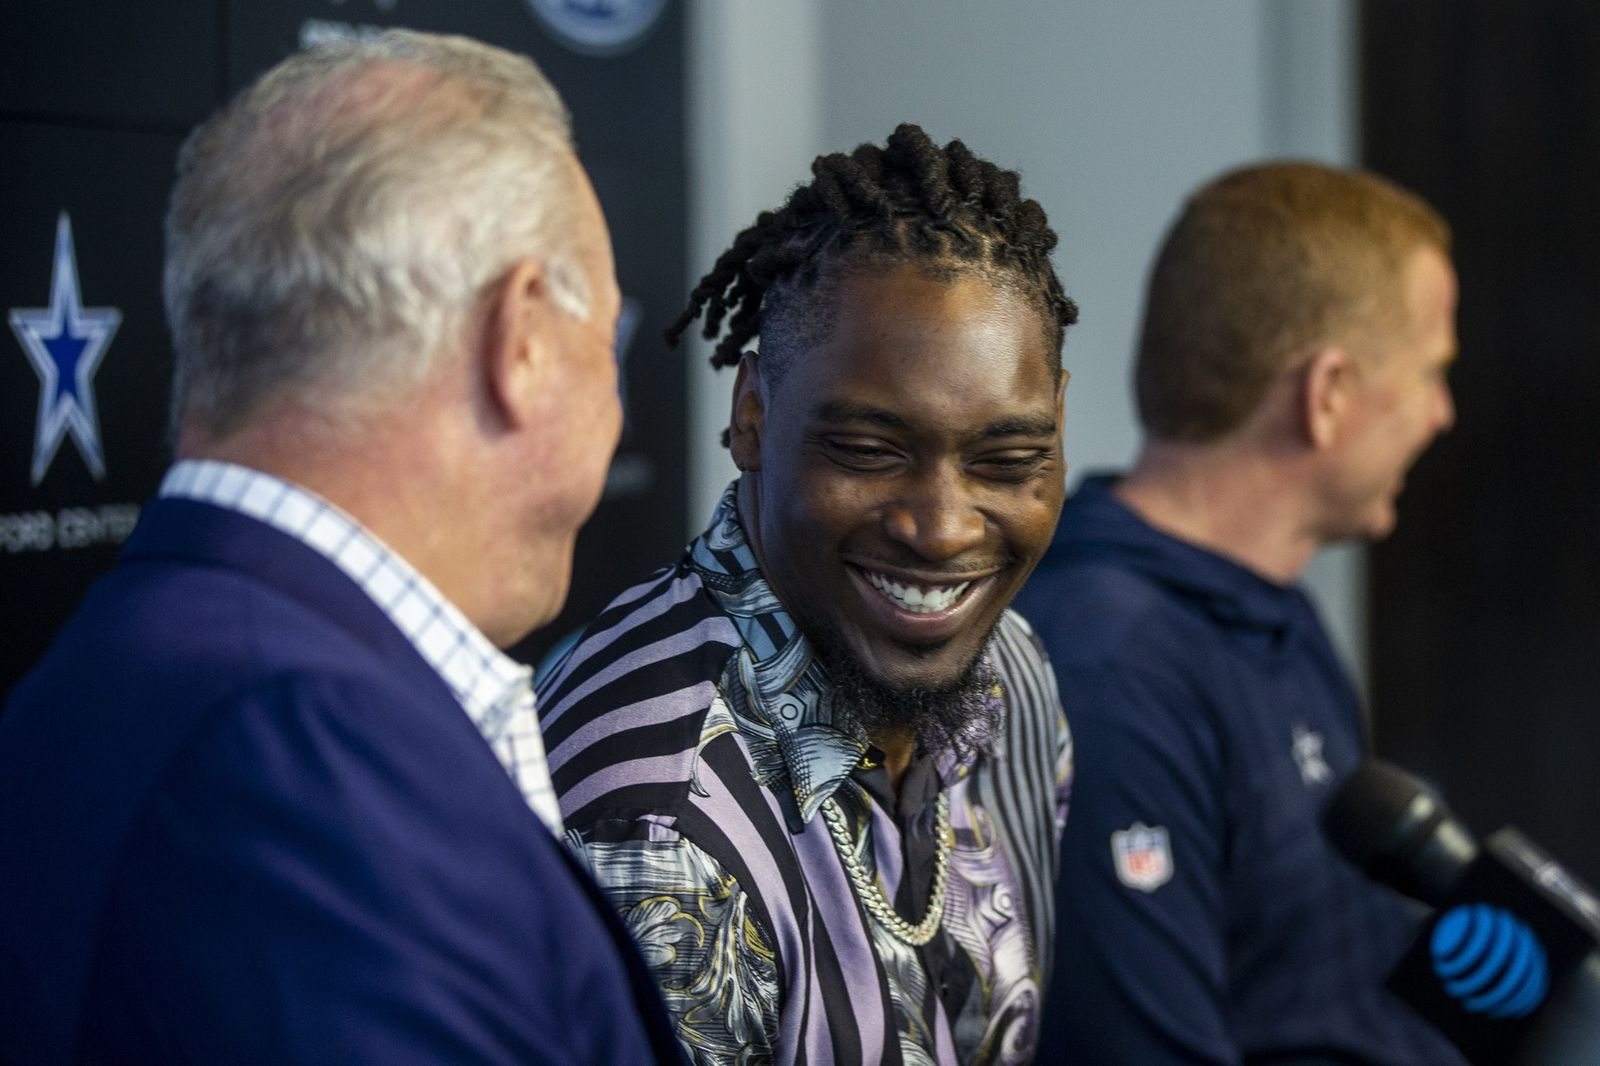 Dallas Cowboys CEO Stephen Jones, left, shares a moment with defensive end Demarcus Lawrence as Cowboys owner Jerry Jones gives remarks during a press conference at The Star in Frisco, Texas, Tuesday, April 9, 2019. DeMarcus Lawrence may not be the highest-paid Dallas Cowboys player in history for long. It doesn't mean the club's best defensive end can't enjoy the distinction while it lasts. The 26-year-old Lawrence signed a $105 million, five-year contract Tuesday.(Shaban Athuman/The Dallas Morning News via AP)